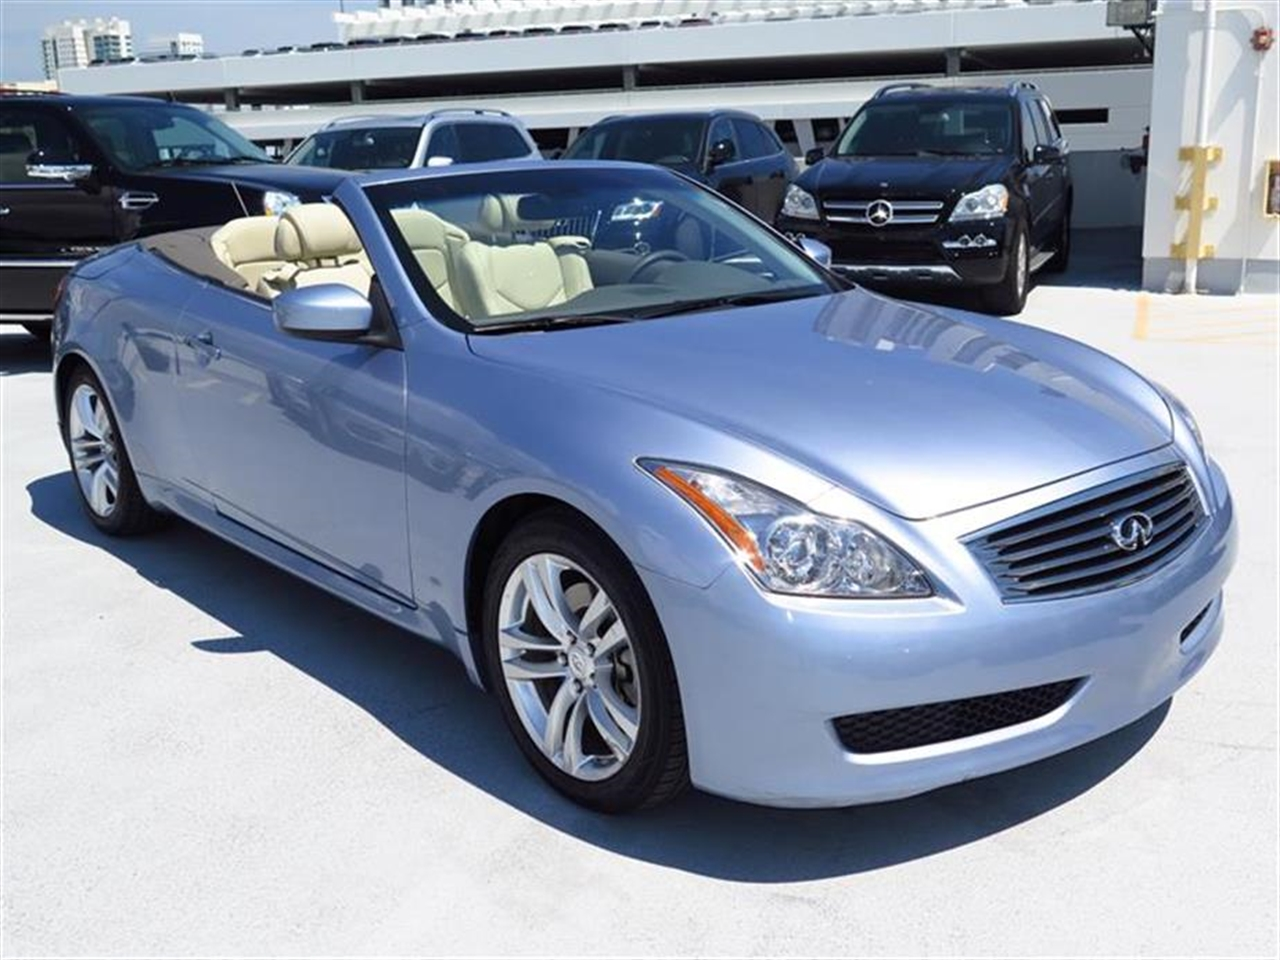 2009 INFINITI G37 2dr Base 62344 miles 2 ash trays wcigarette lighter 2 front cup holders